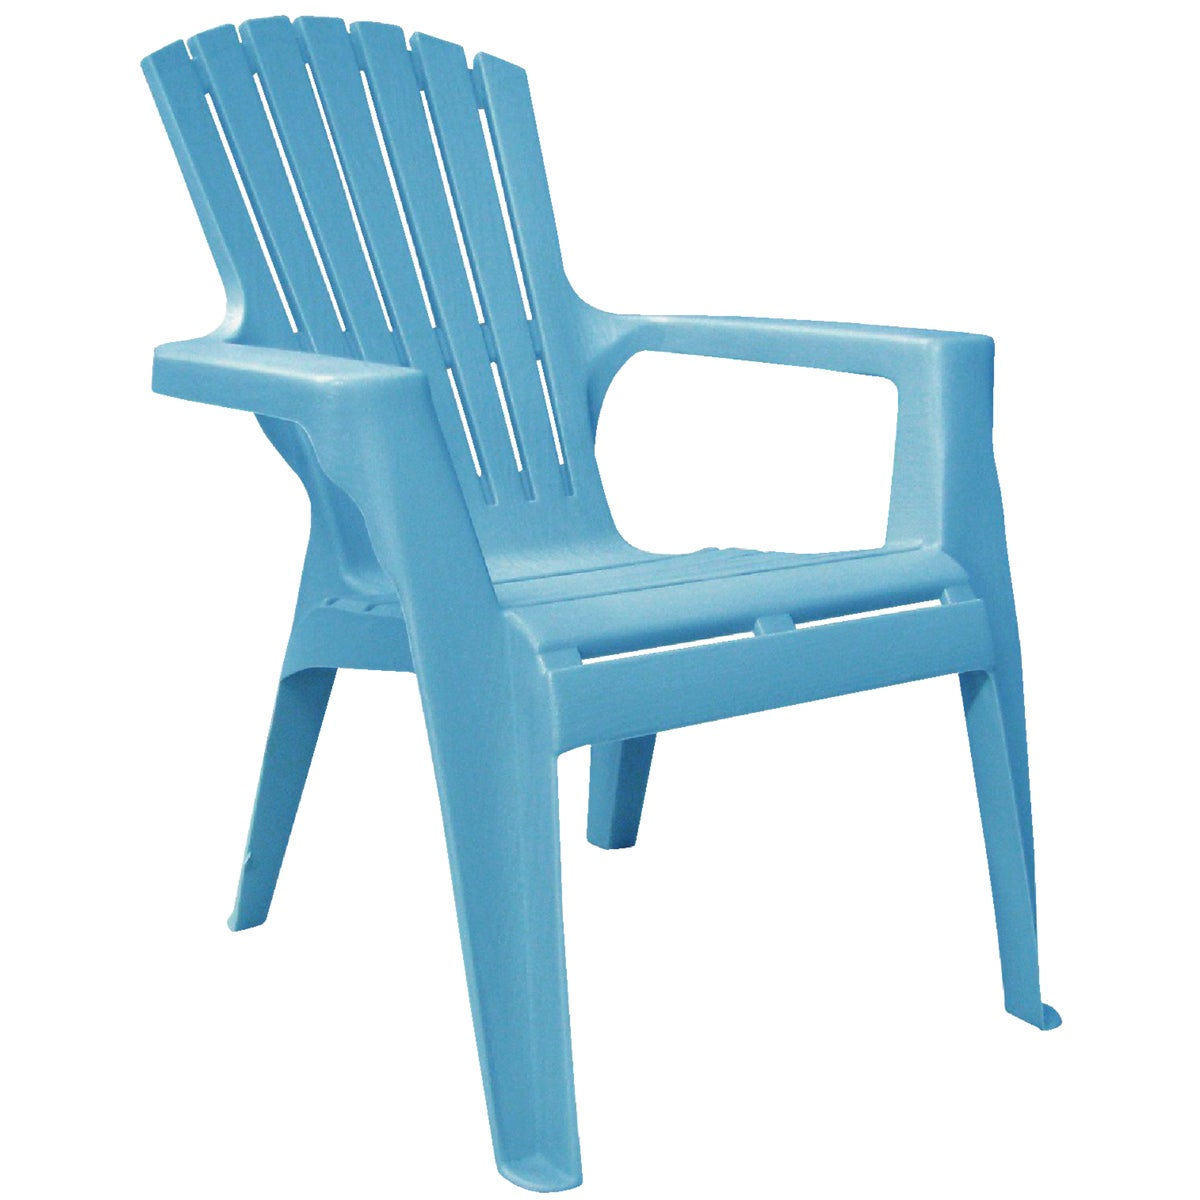 POOL BLU KIDS ADIRONDACK - 8460-21-3731 by Adams Mfg Patio Furn